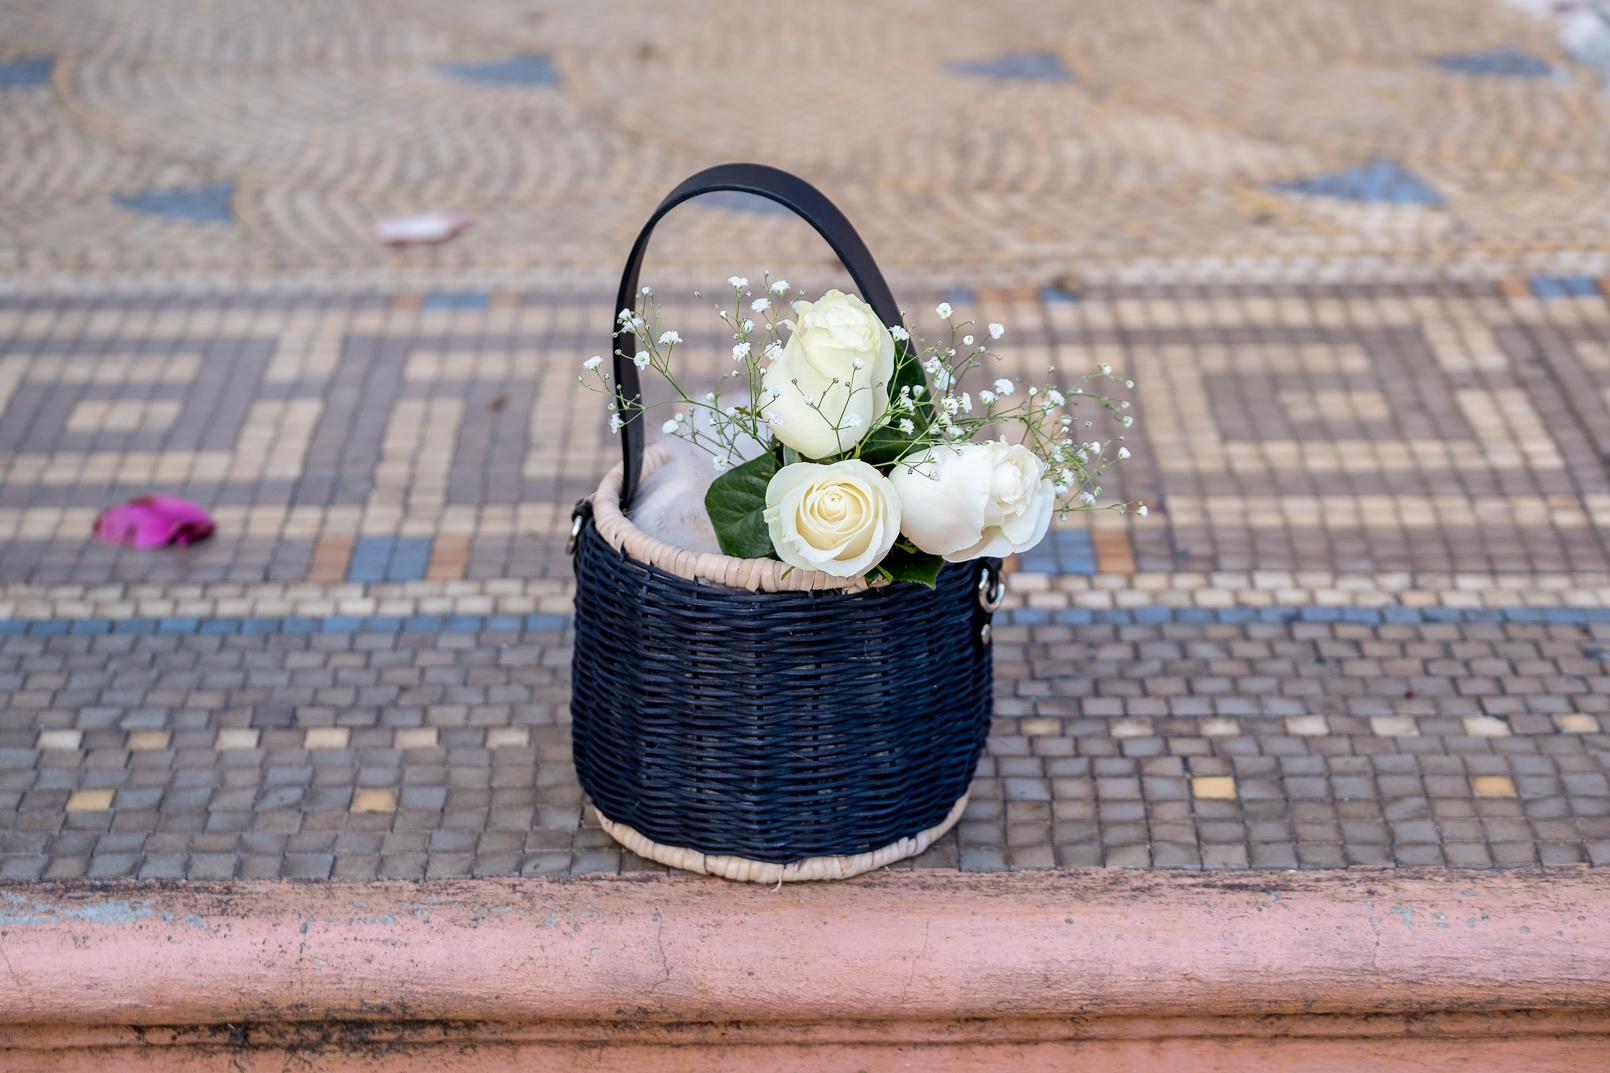 Le Fashionaire black zara straw basket white roses 1033 EN black zara straw basket white roses 1033 EN